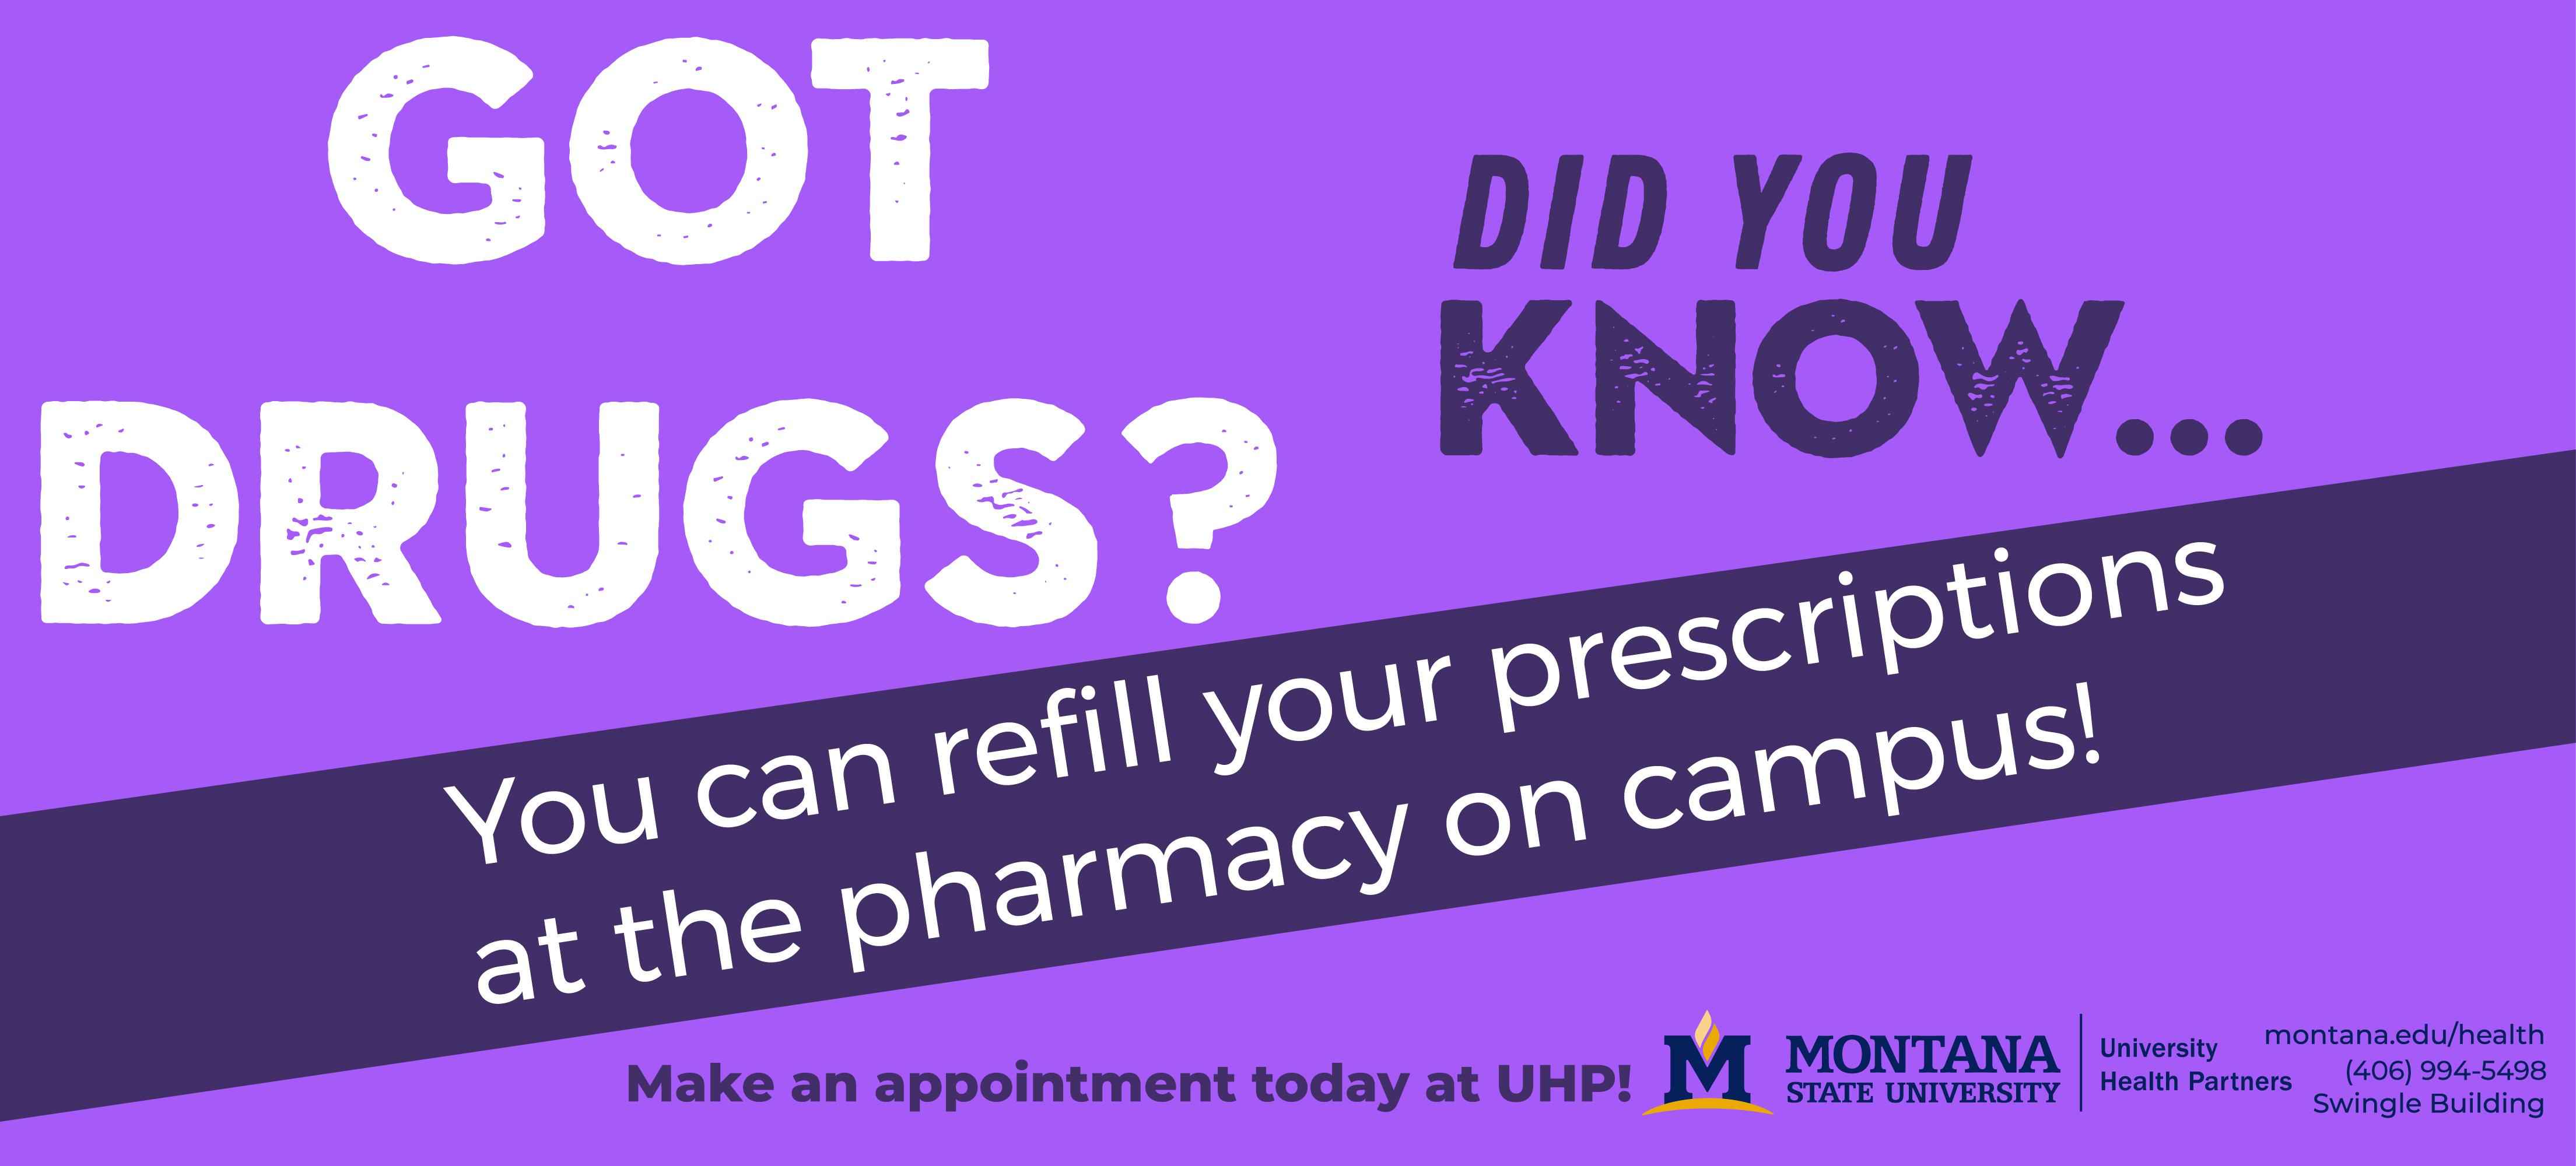 Did you know you can refill your prescriptions at the pharmacy on campus?